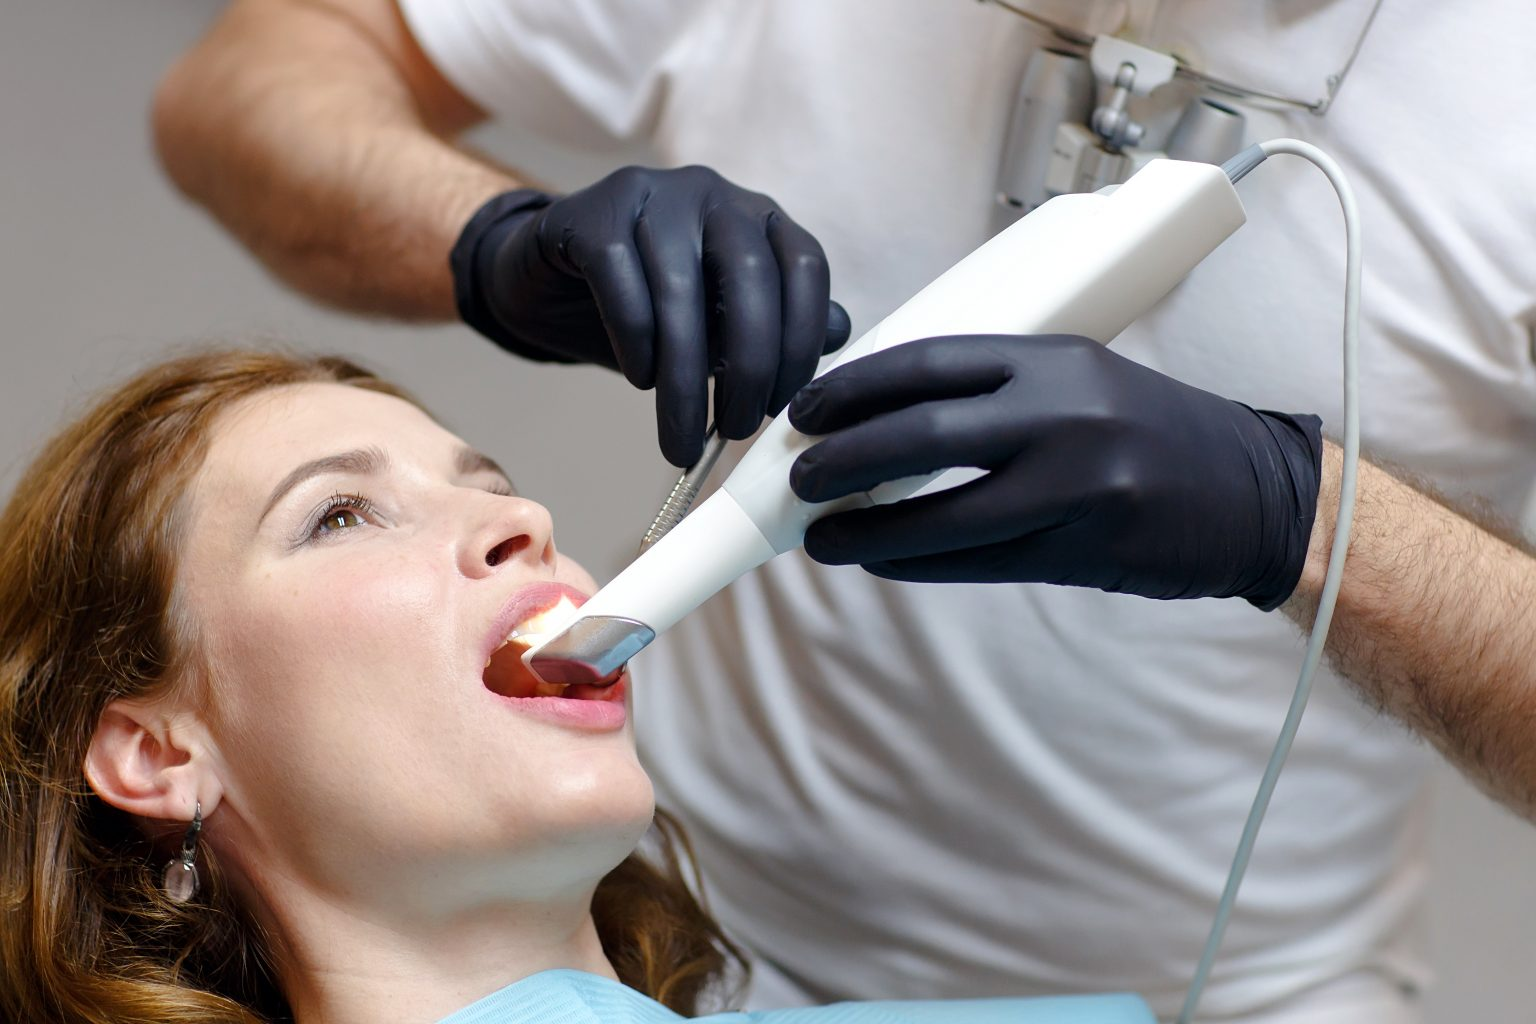 The Dentist Scans The Patient's Teeth With A 3d Scanner.